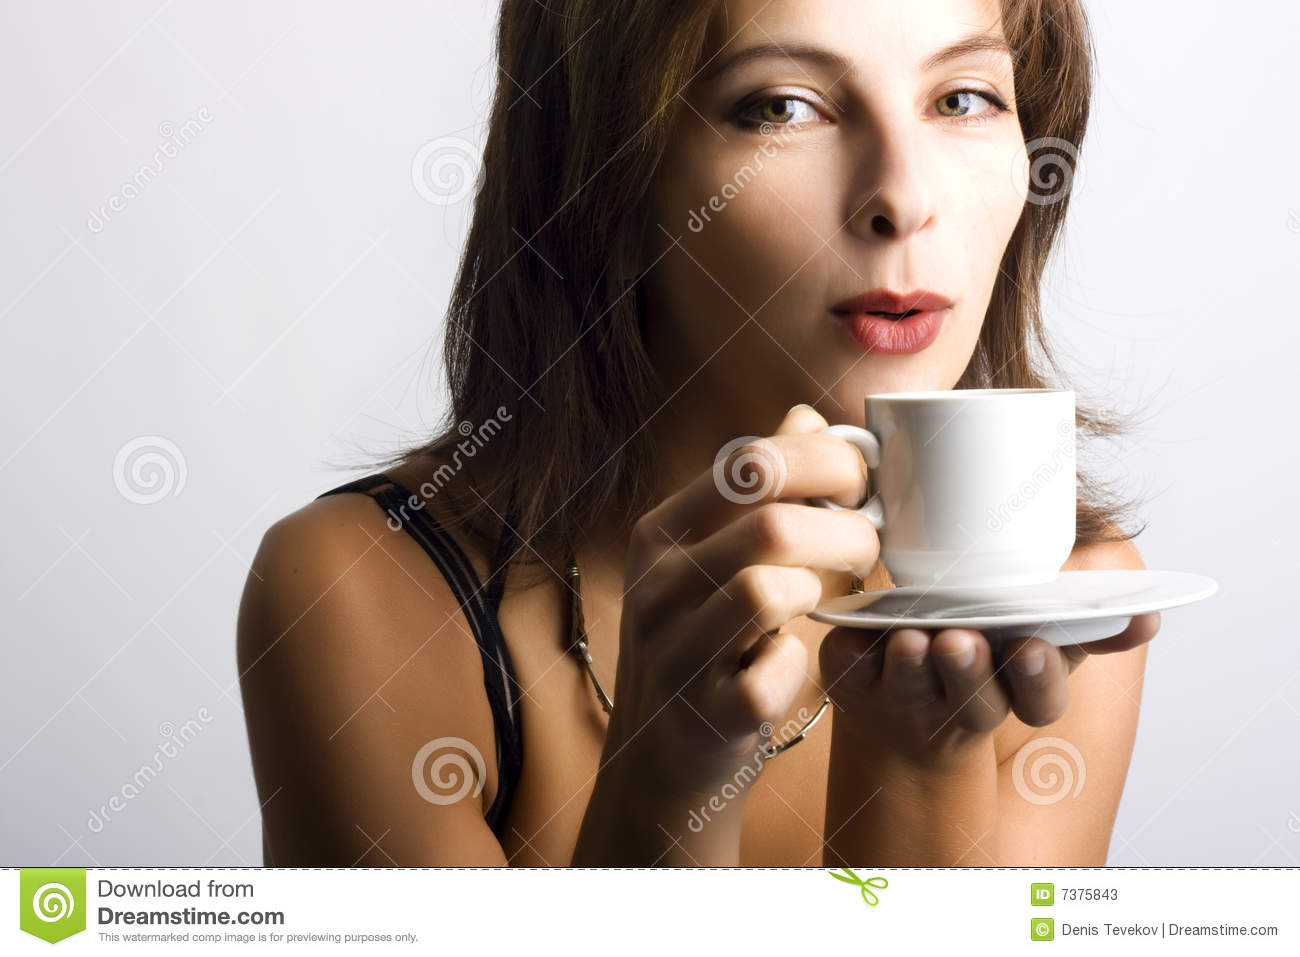 Yougn People Drinking Coffee